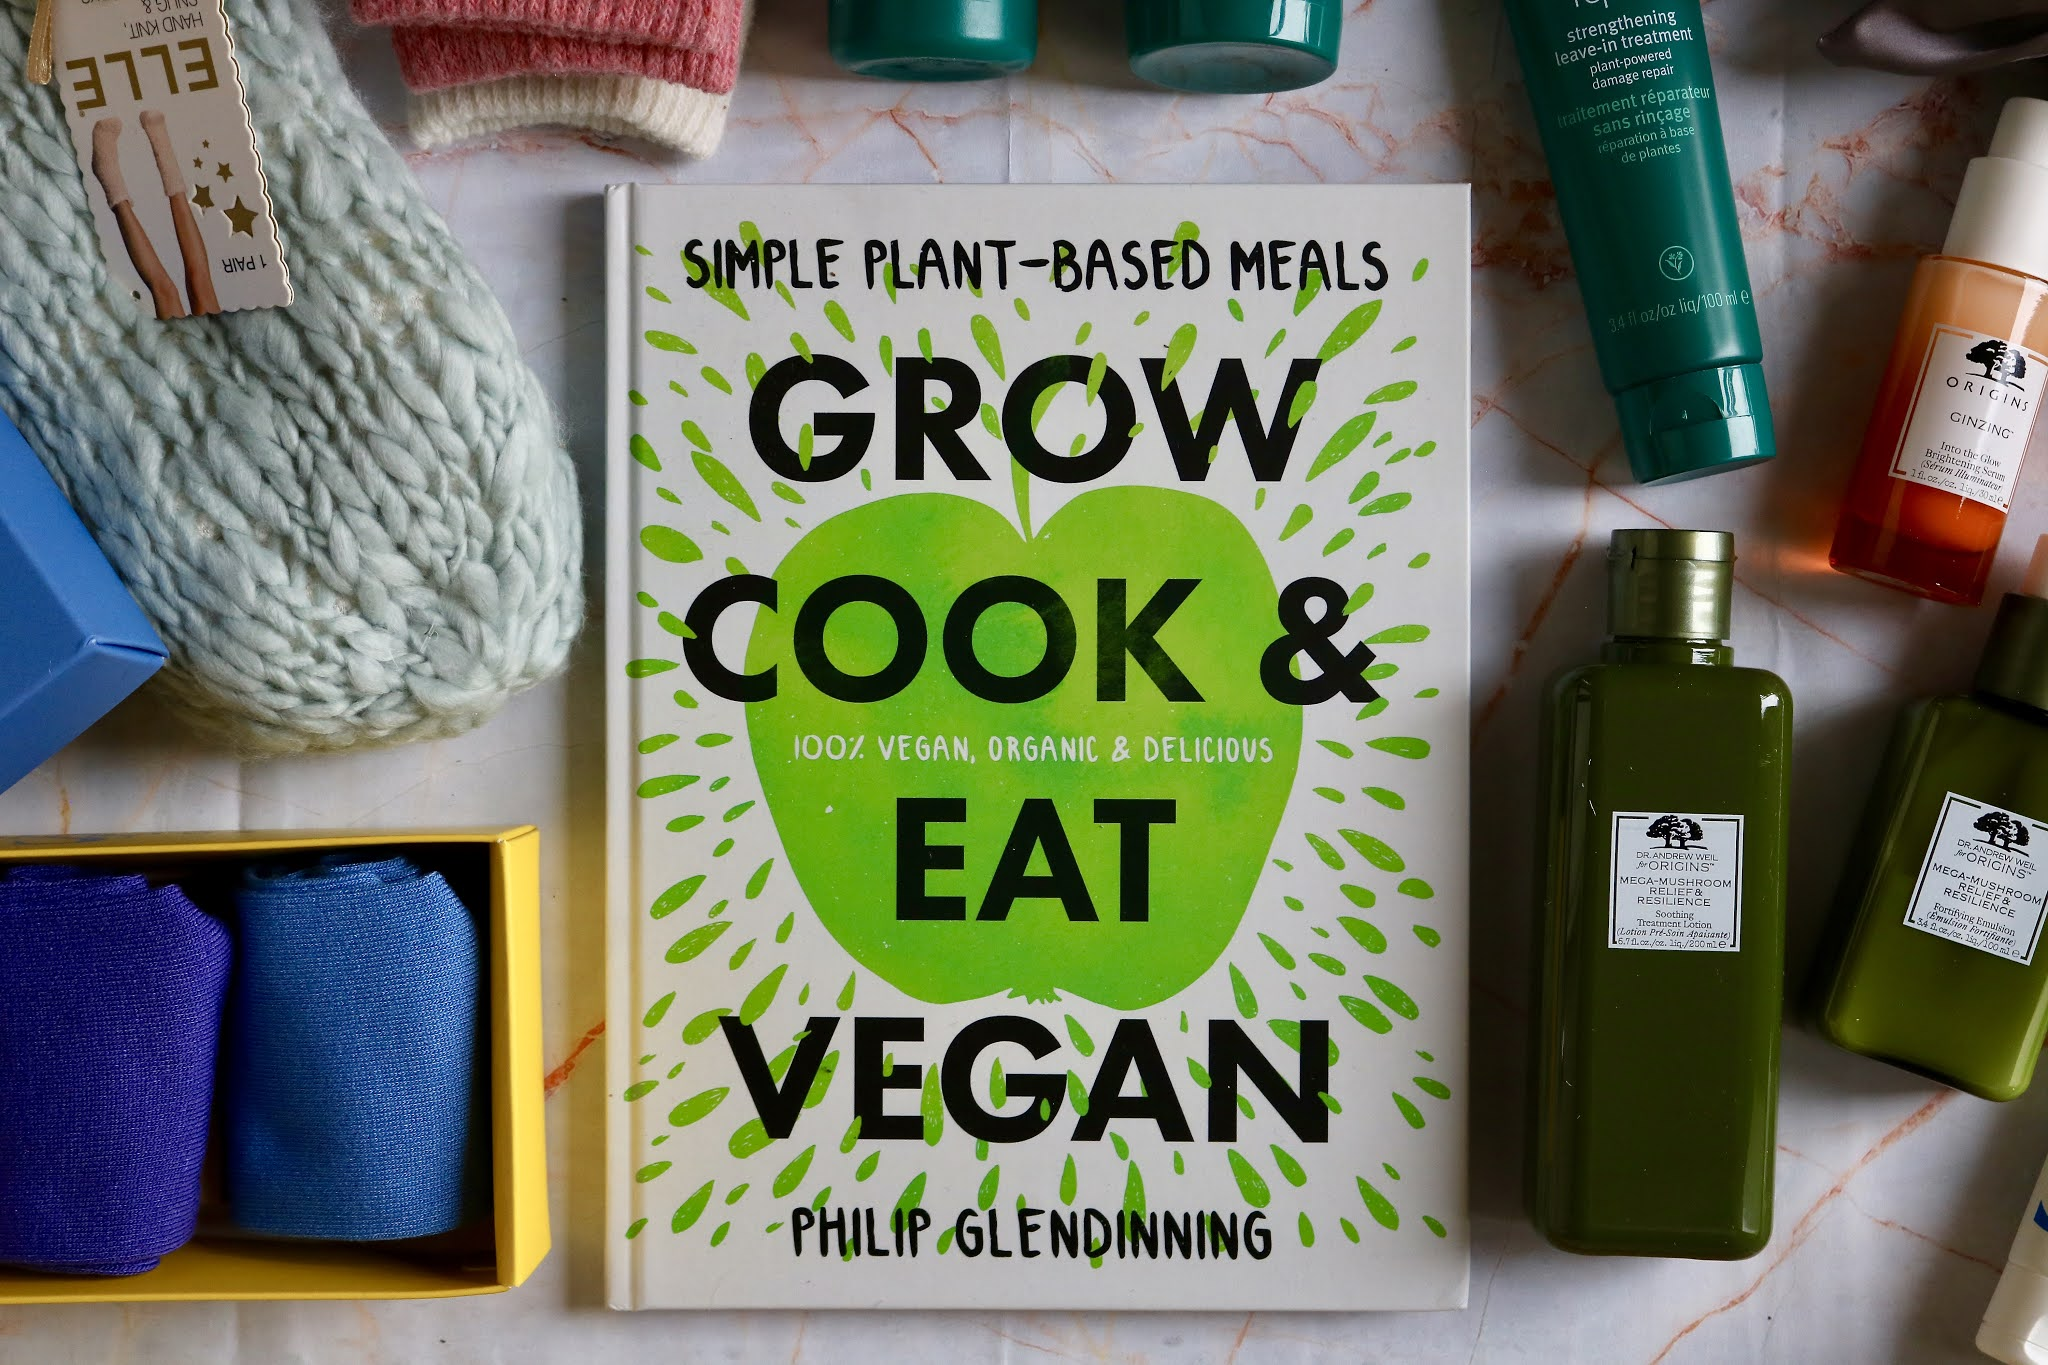 Grow, Cook & Eat Vegan by Philip Glendinning £13.49